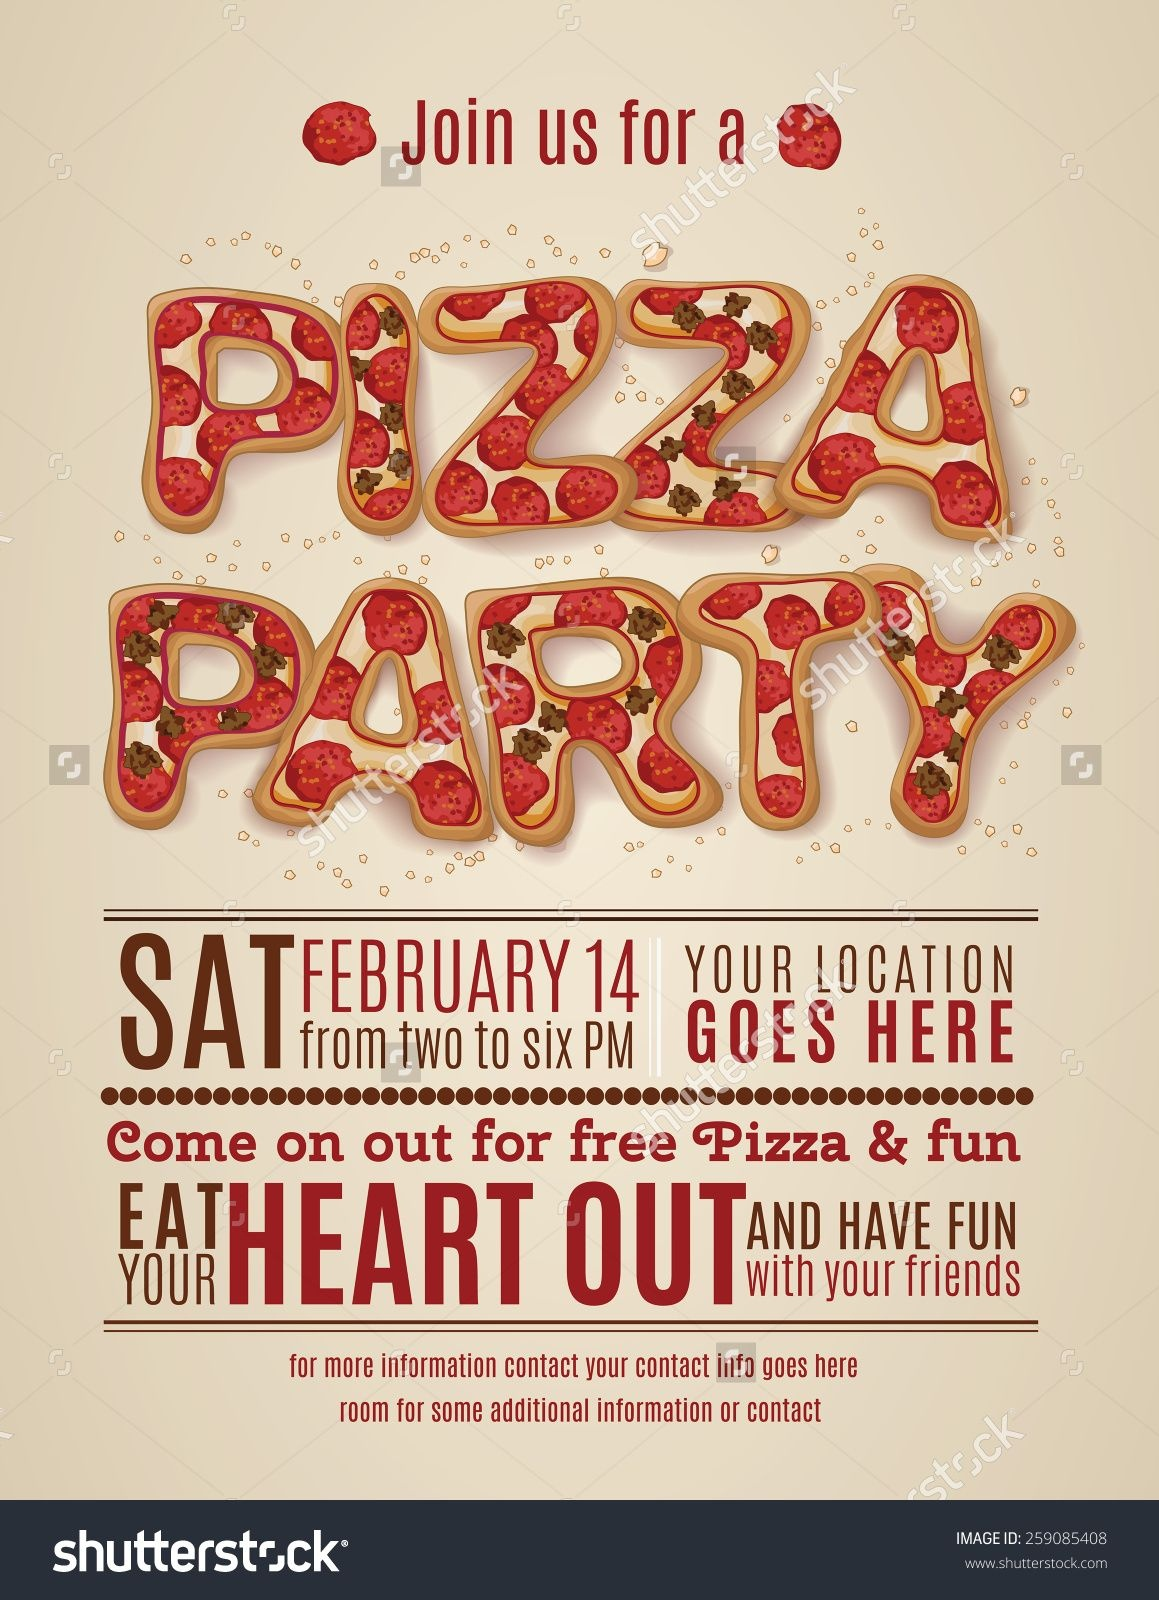 Pizza Party Invitation Template Free - Invitation Templates Design - Free Printable Flyers For Parties